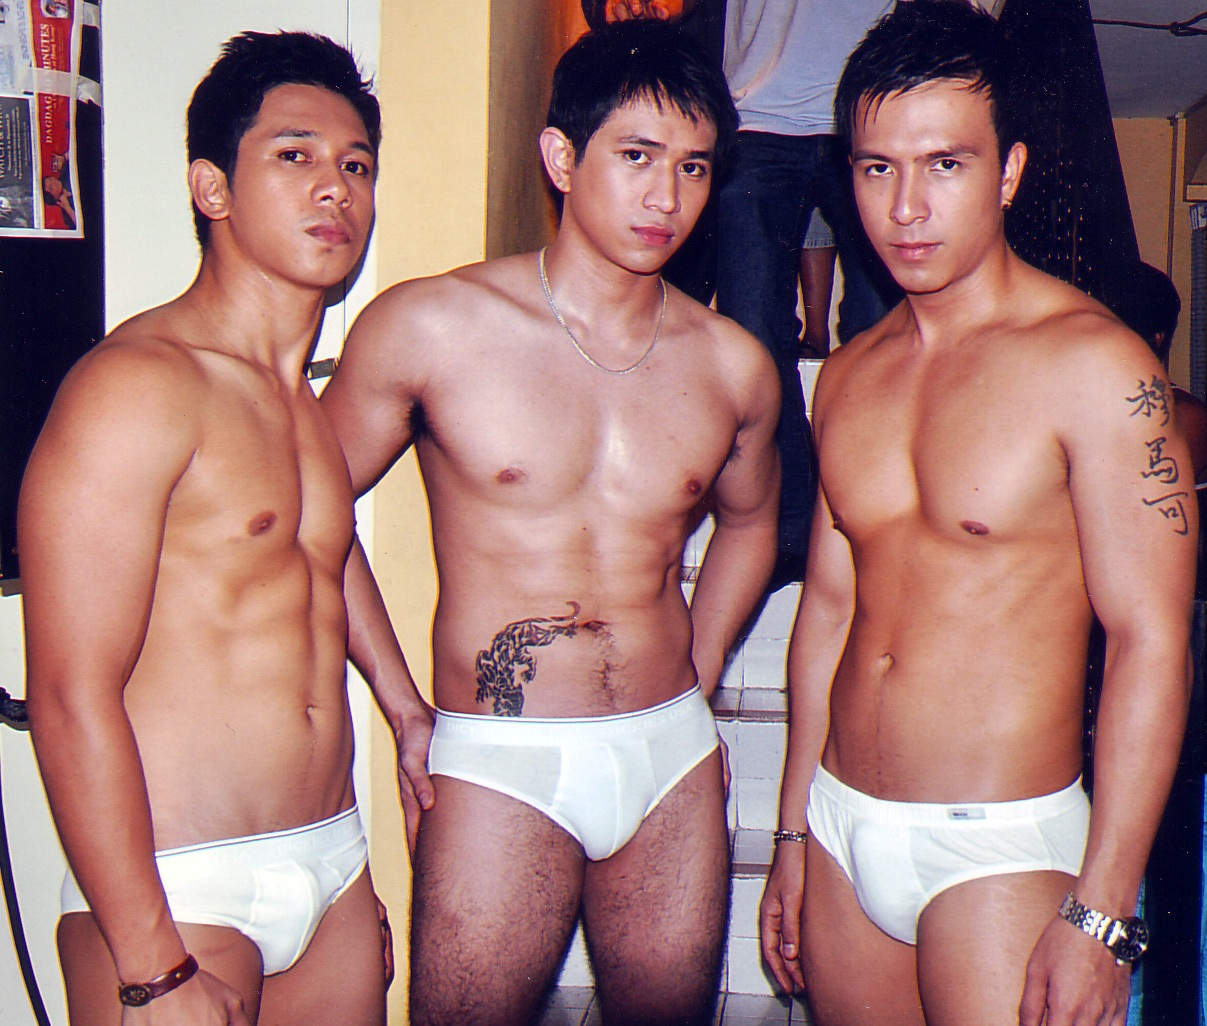 Marco, Paolo and Joash will play the role of masseurs with a